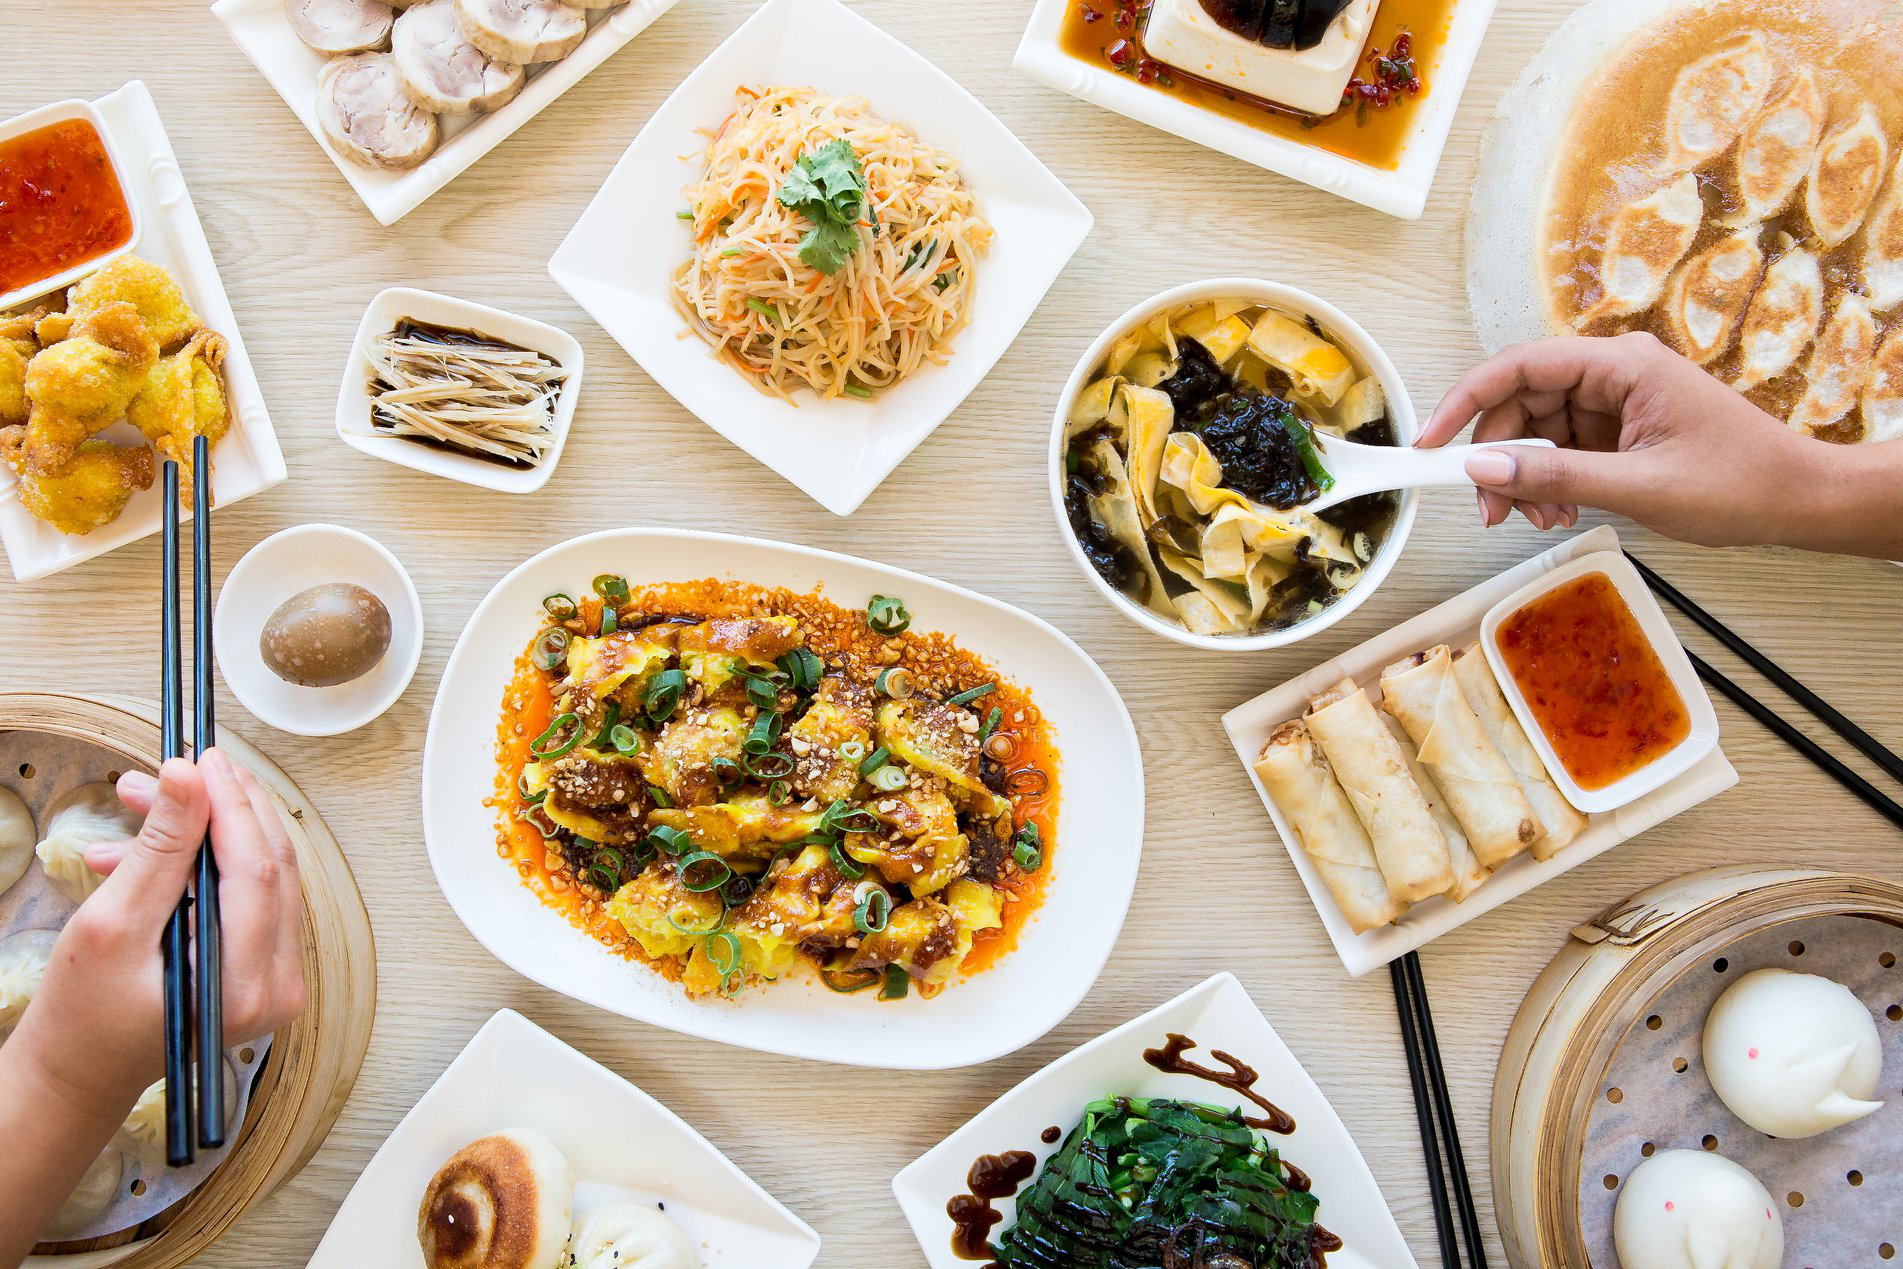 Aerial shot of share plates of dumplings and noodles at Authentic Bites